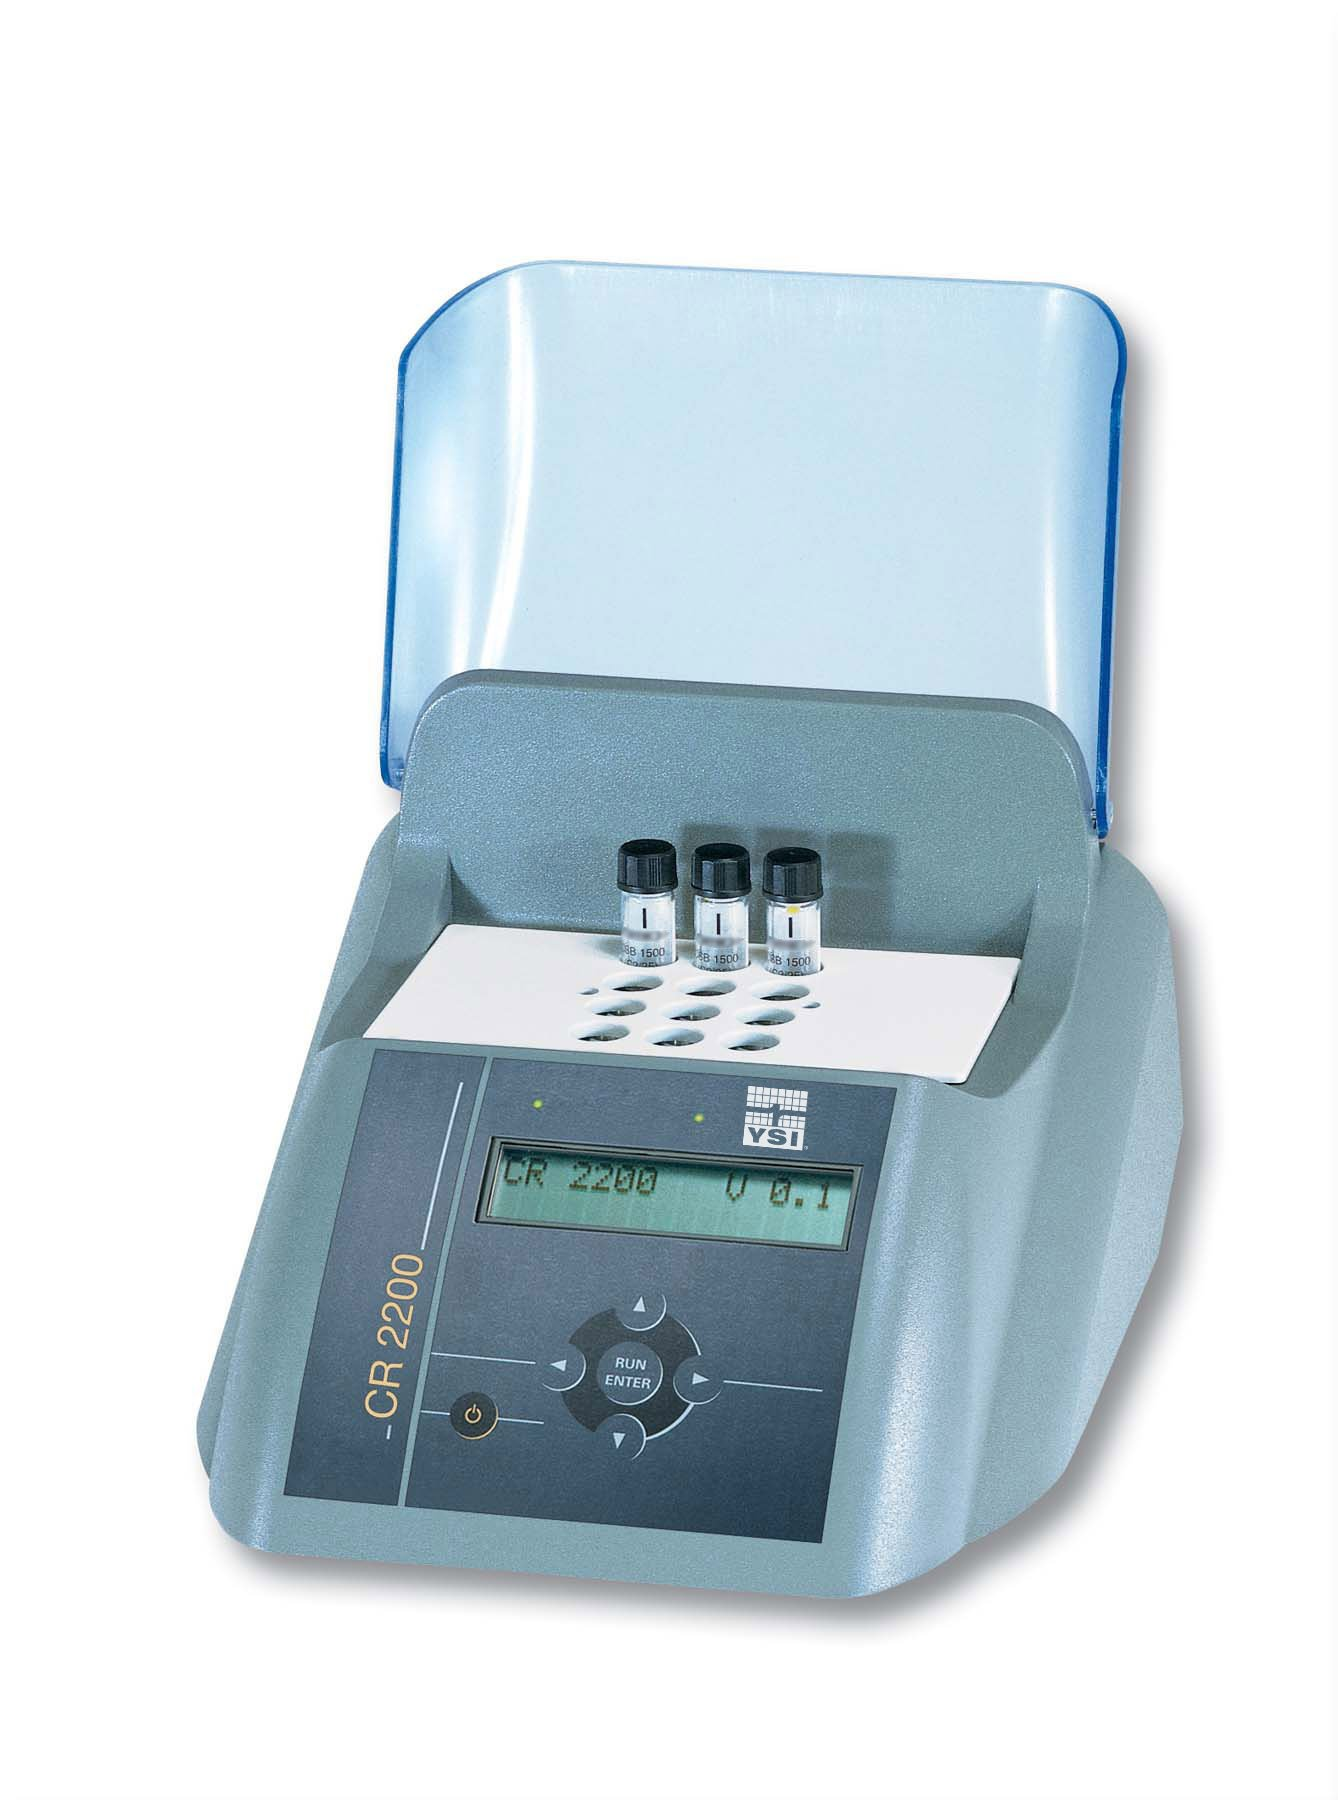 YSI 1P21-2Y Model CR 2200 Thermoreactor for COD & Thermal Digestions, Upto 12 Test Tubes, 3 Reactor Temperatures and 8 Fixed Programs, 115V